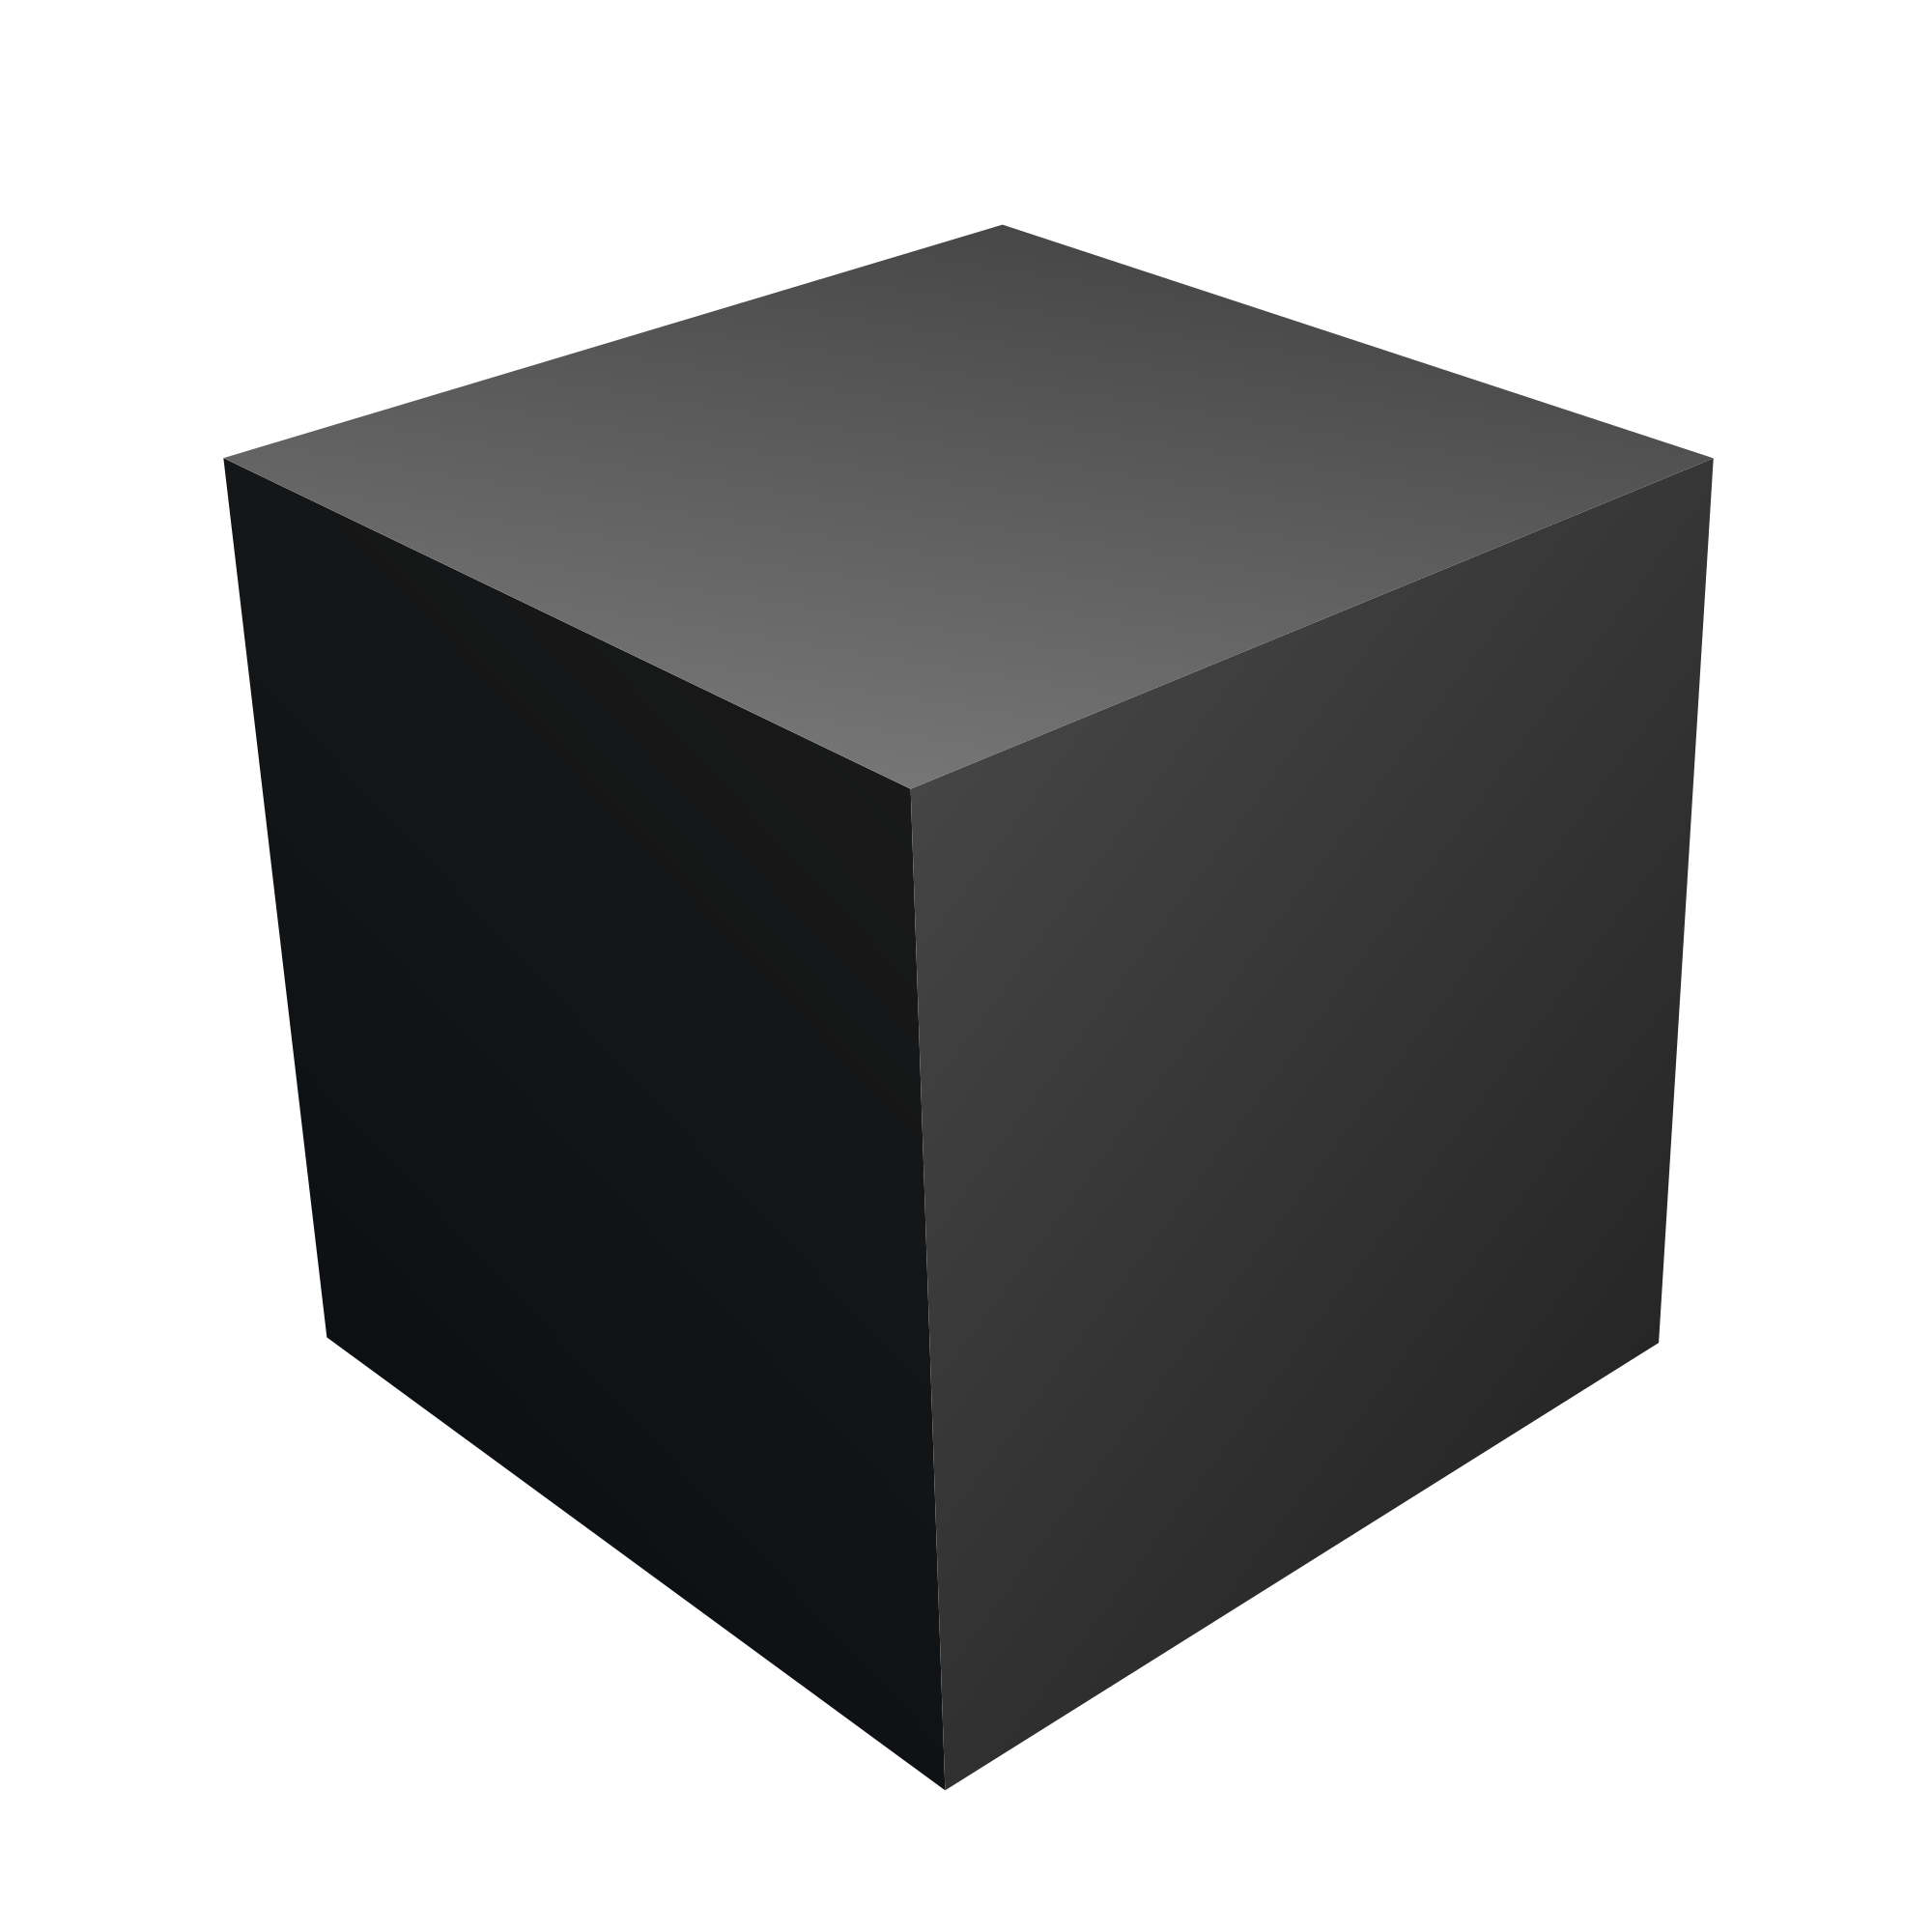 A 3d cube png. File with blender svg